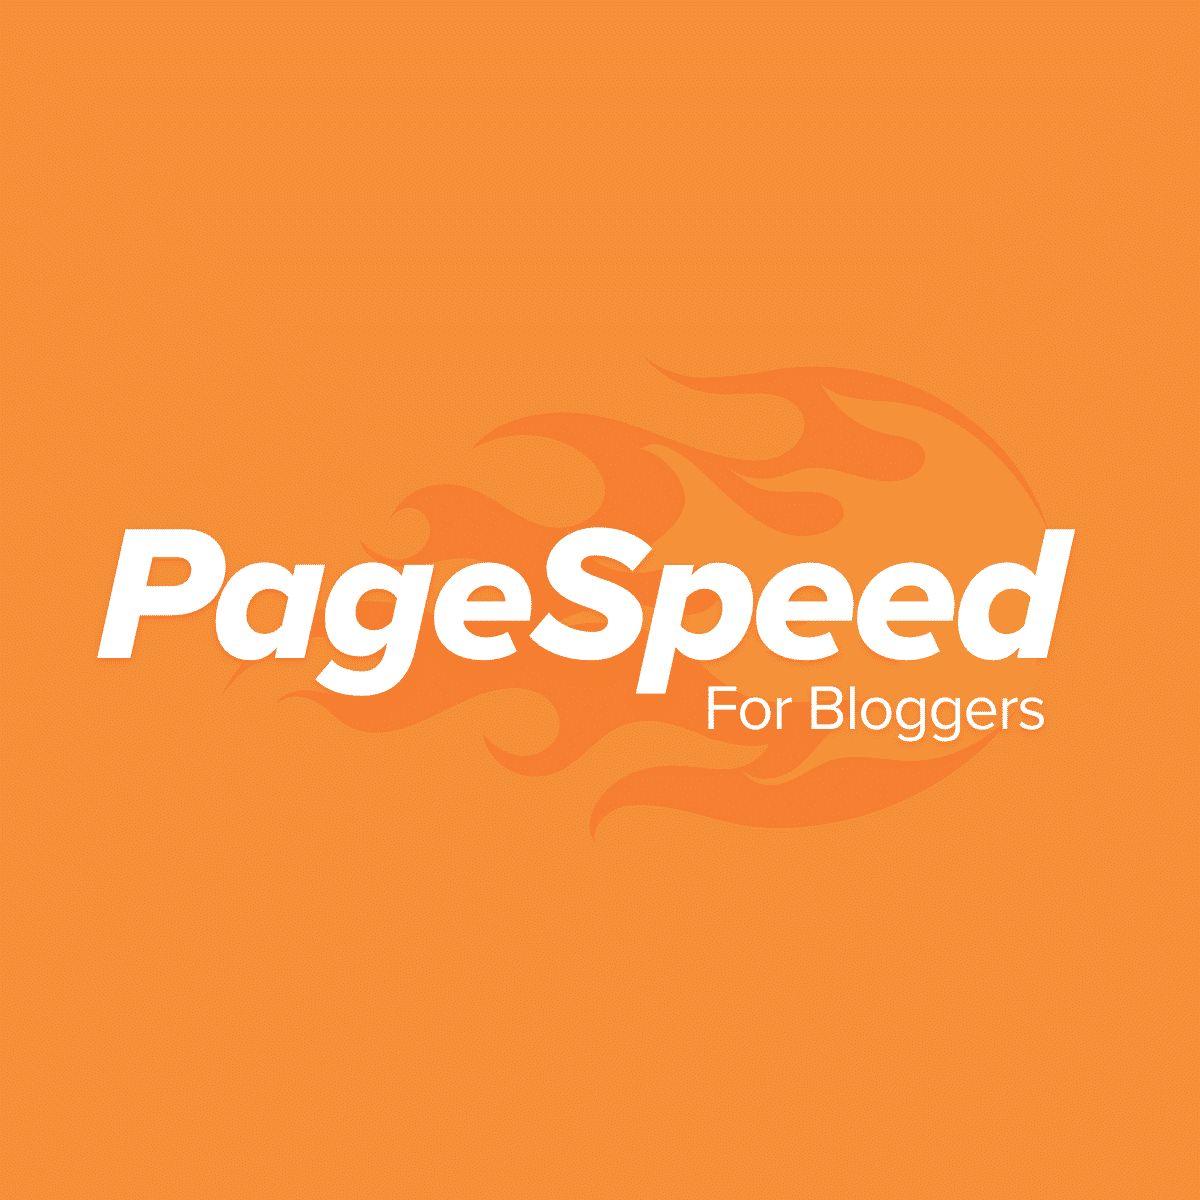 PageSpeed For Bloggers: Get Your Site to Load in 1 Second or Less [COURSE]